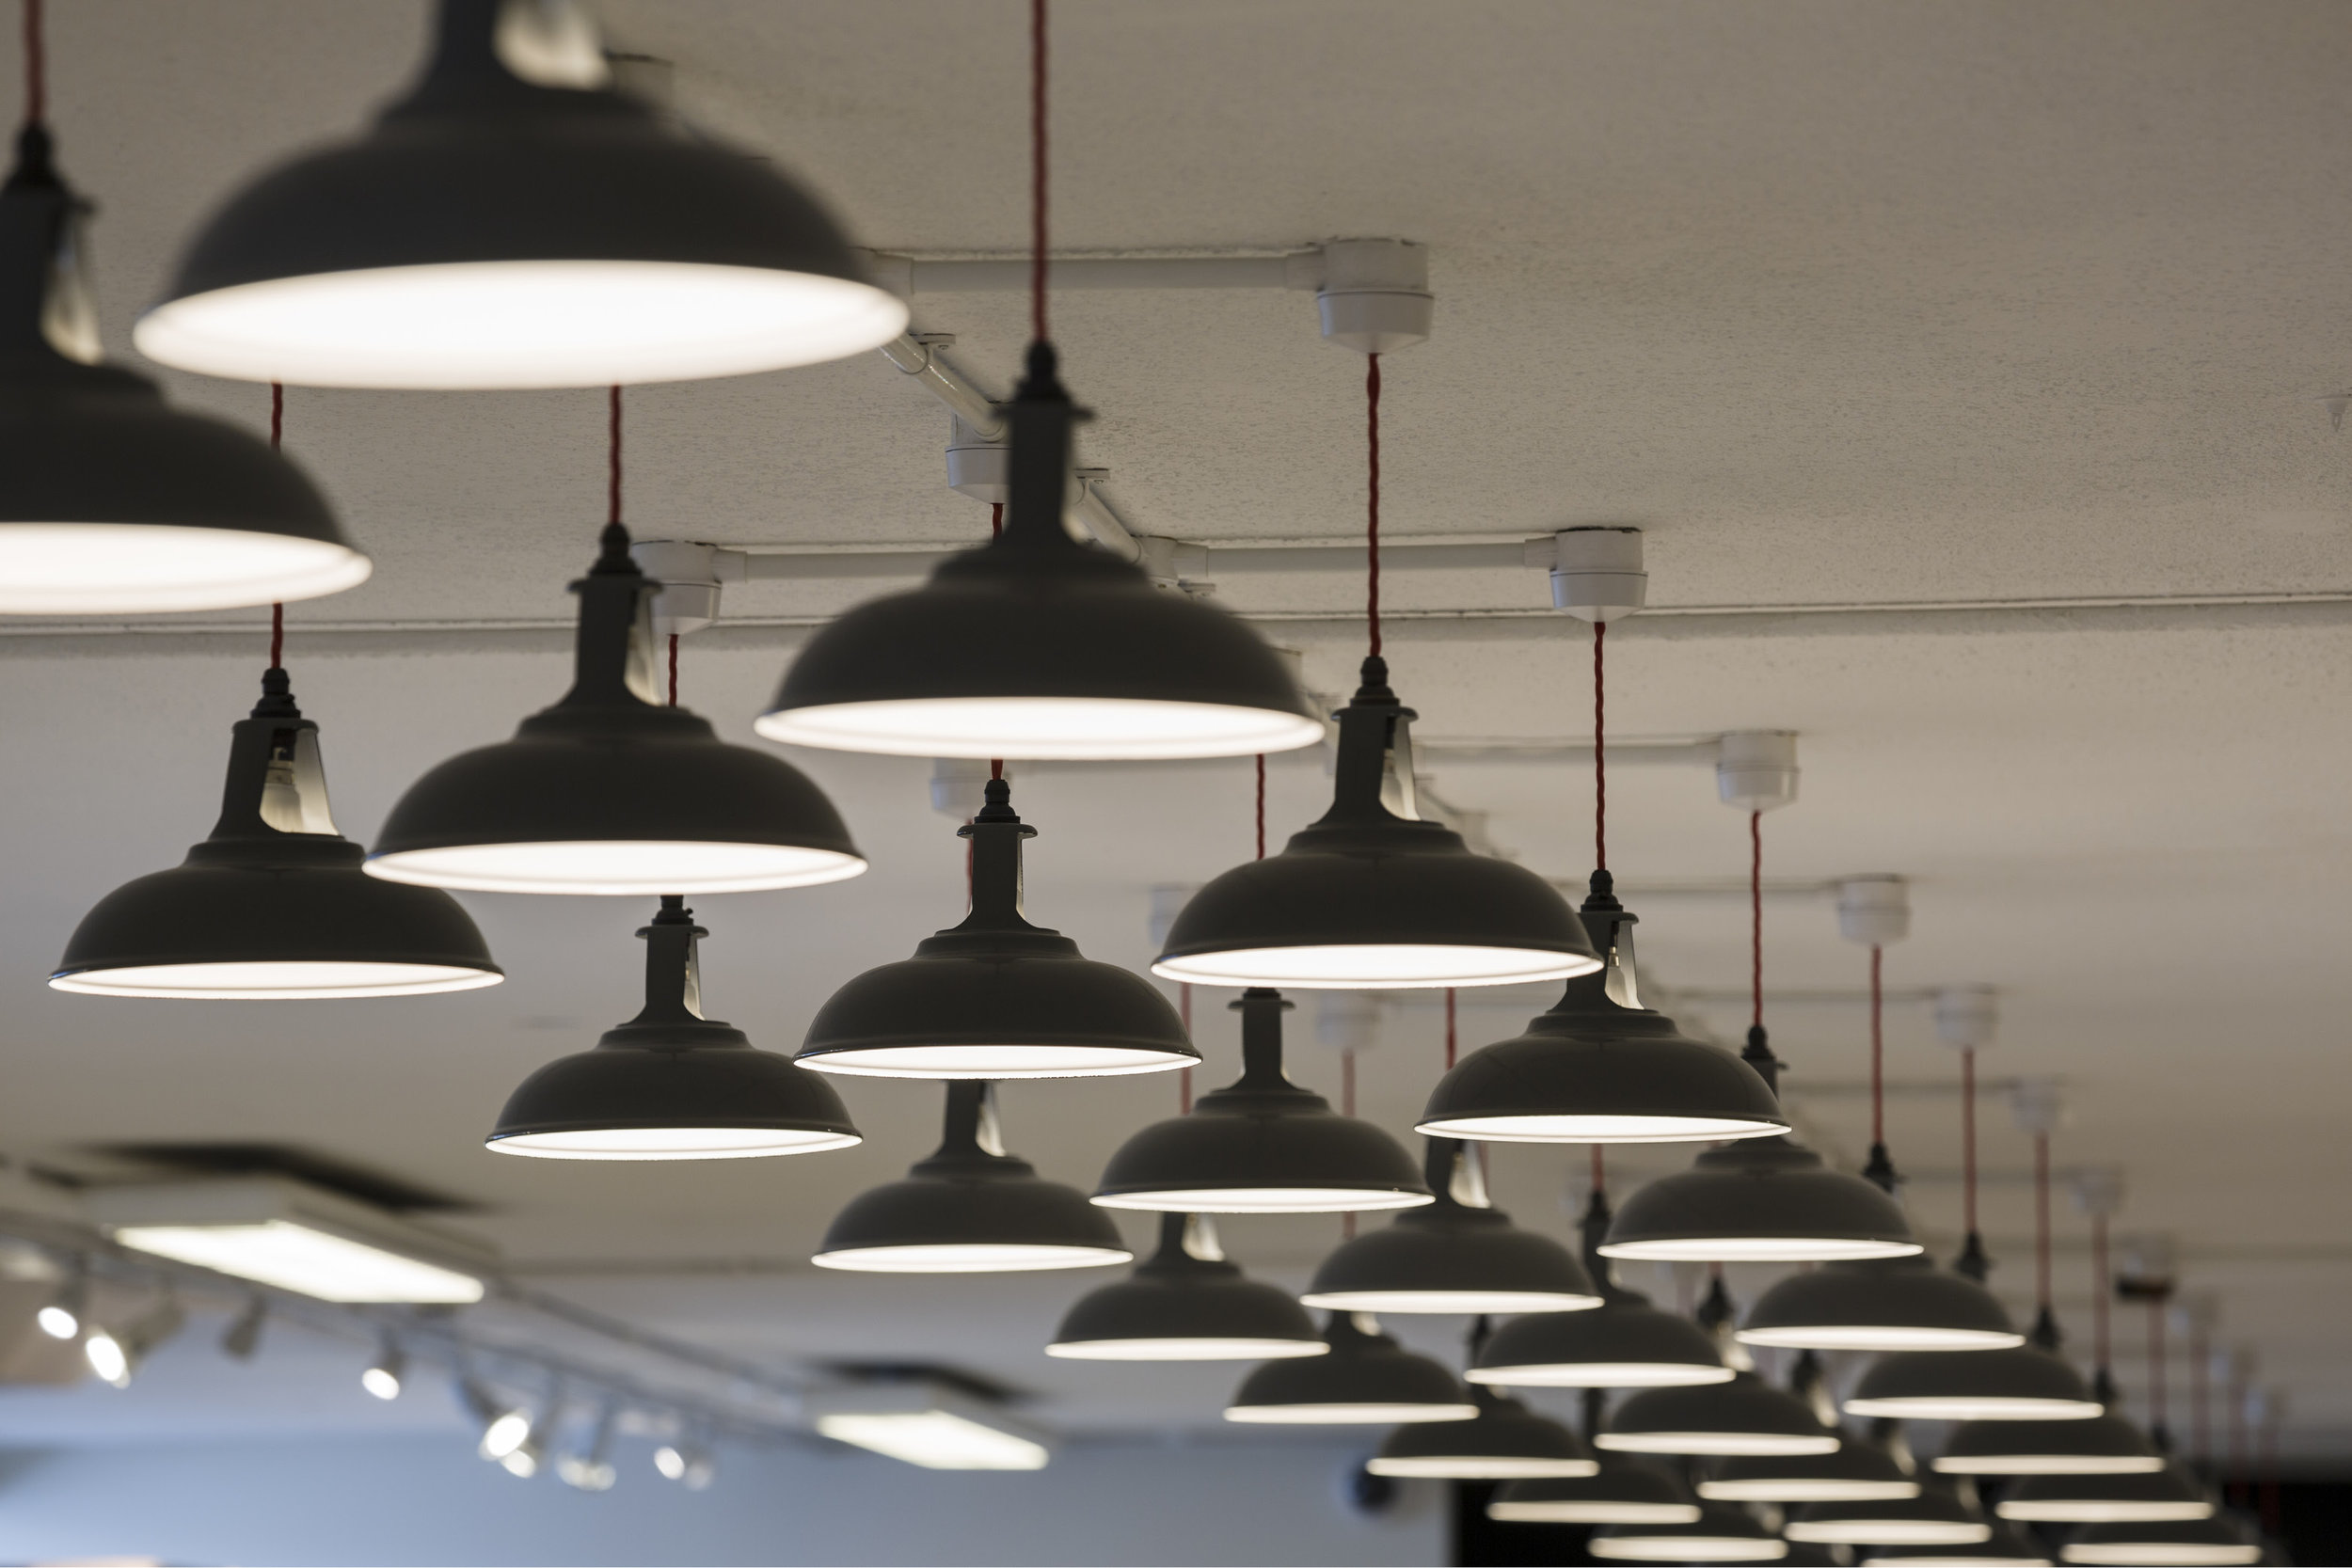 Photograph of Enamelled Lights at Berry Bros. and Rudd (BBR) Warehouse